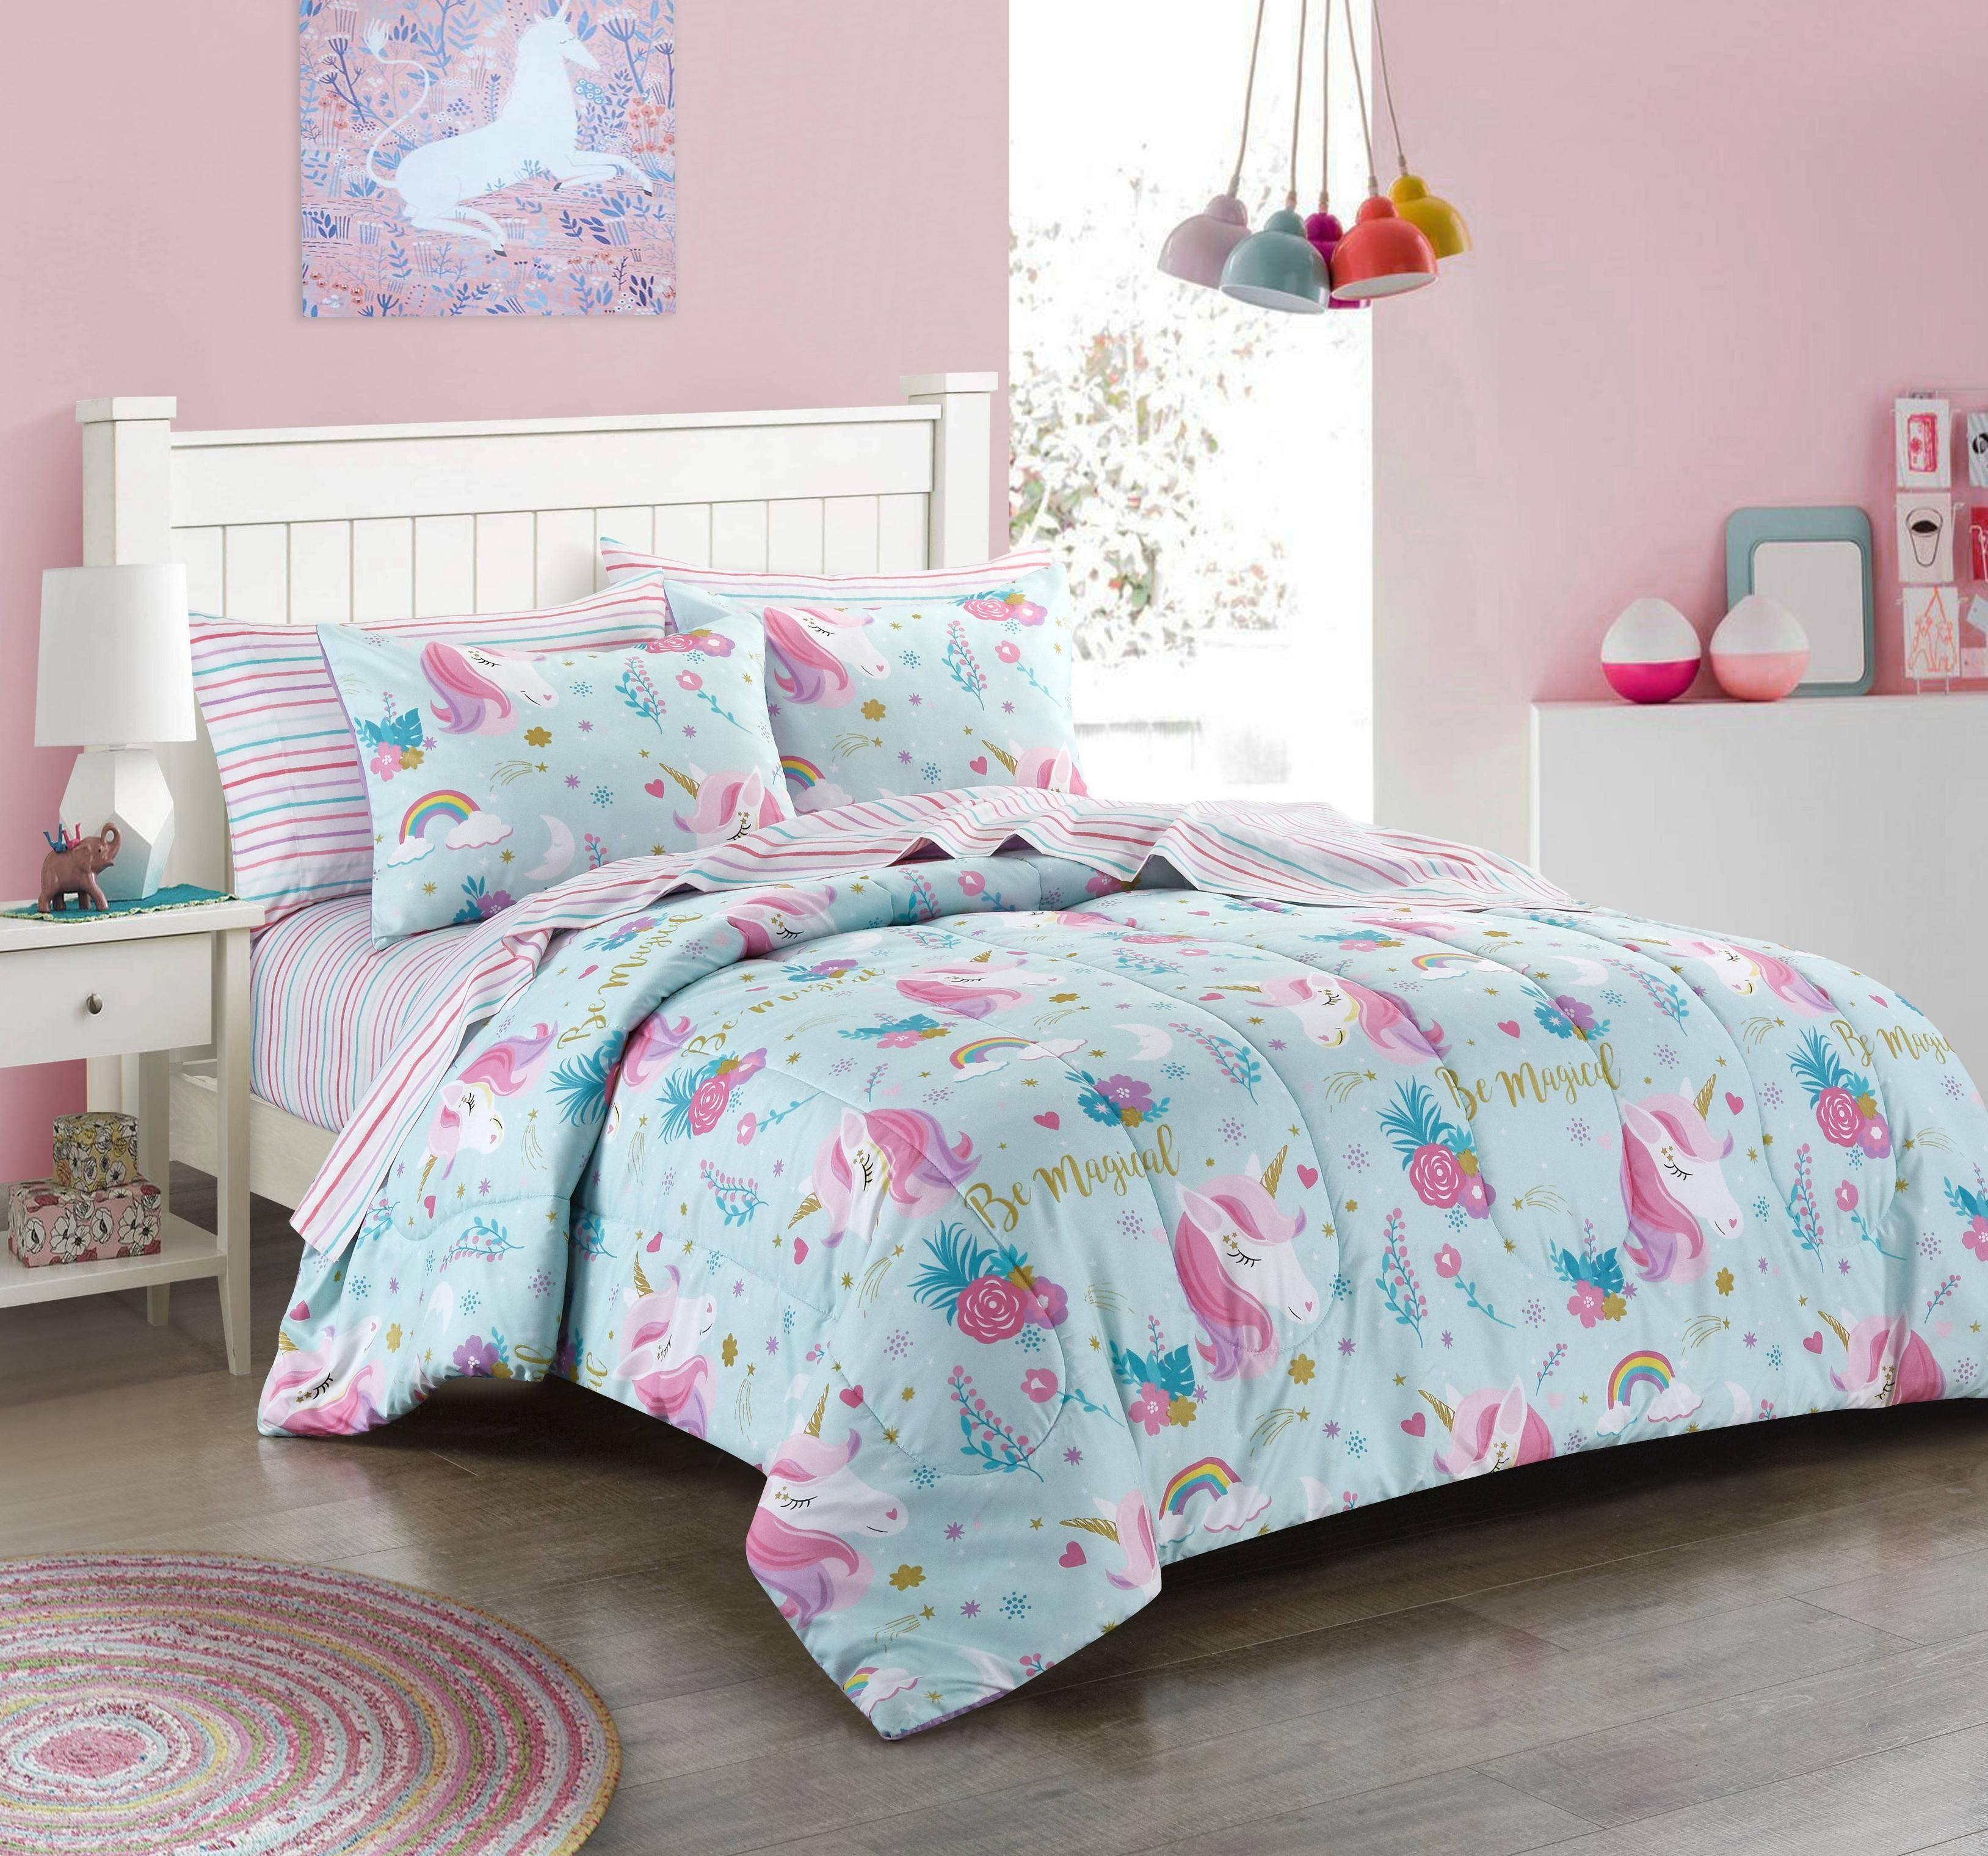 Home Bed In A Bag Unicorn Bedding Comforter Sets